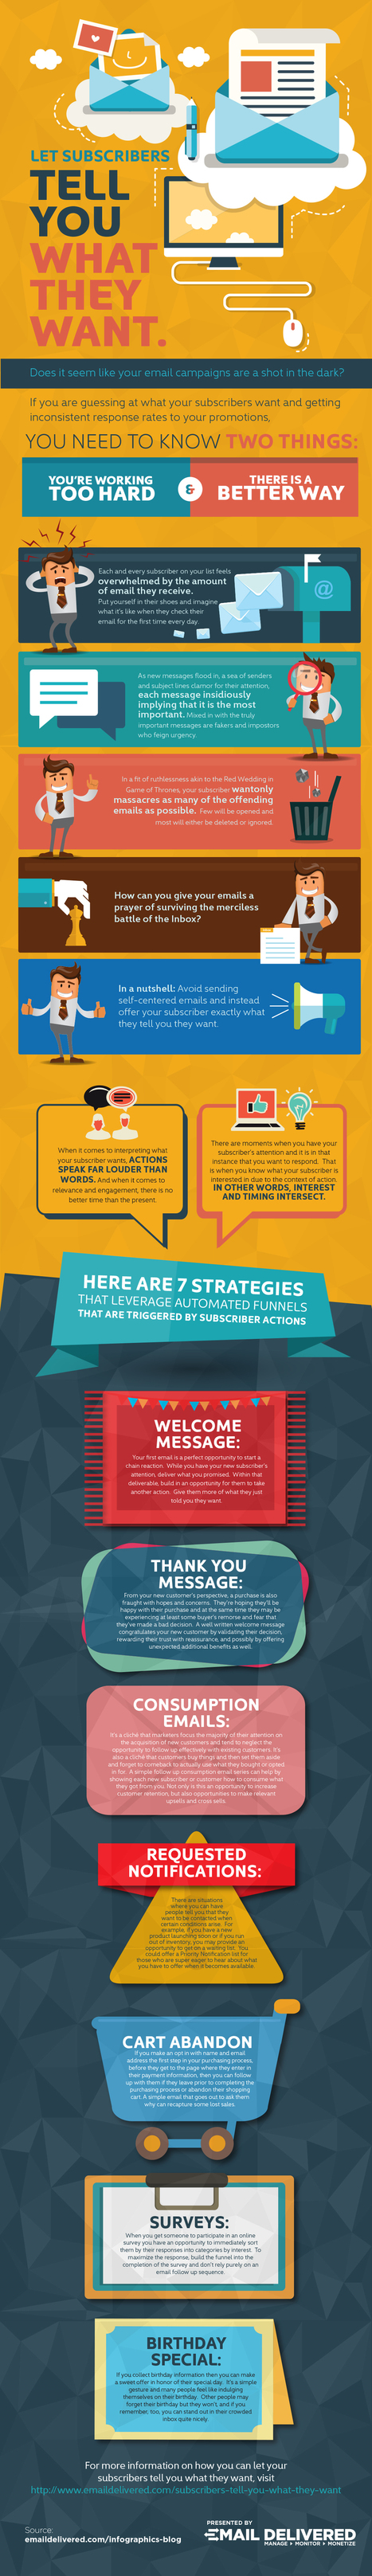 Let Your Subscribers Tell You What They Want-Infographic - | Email Delivered | Scoop.it